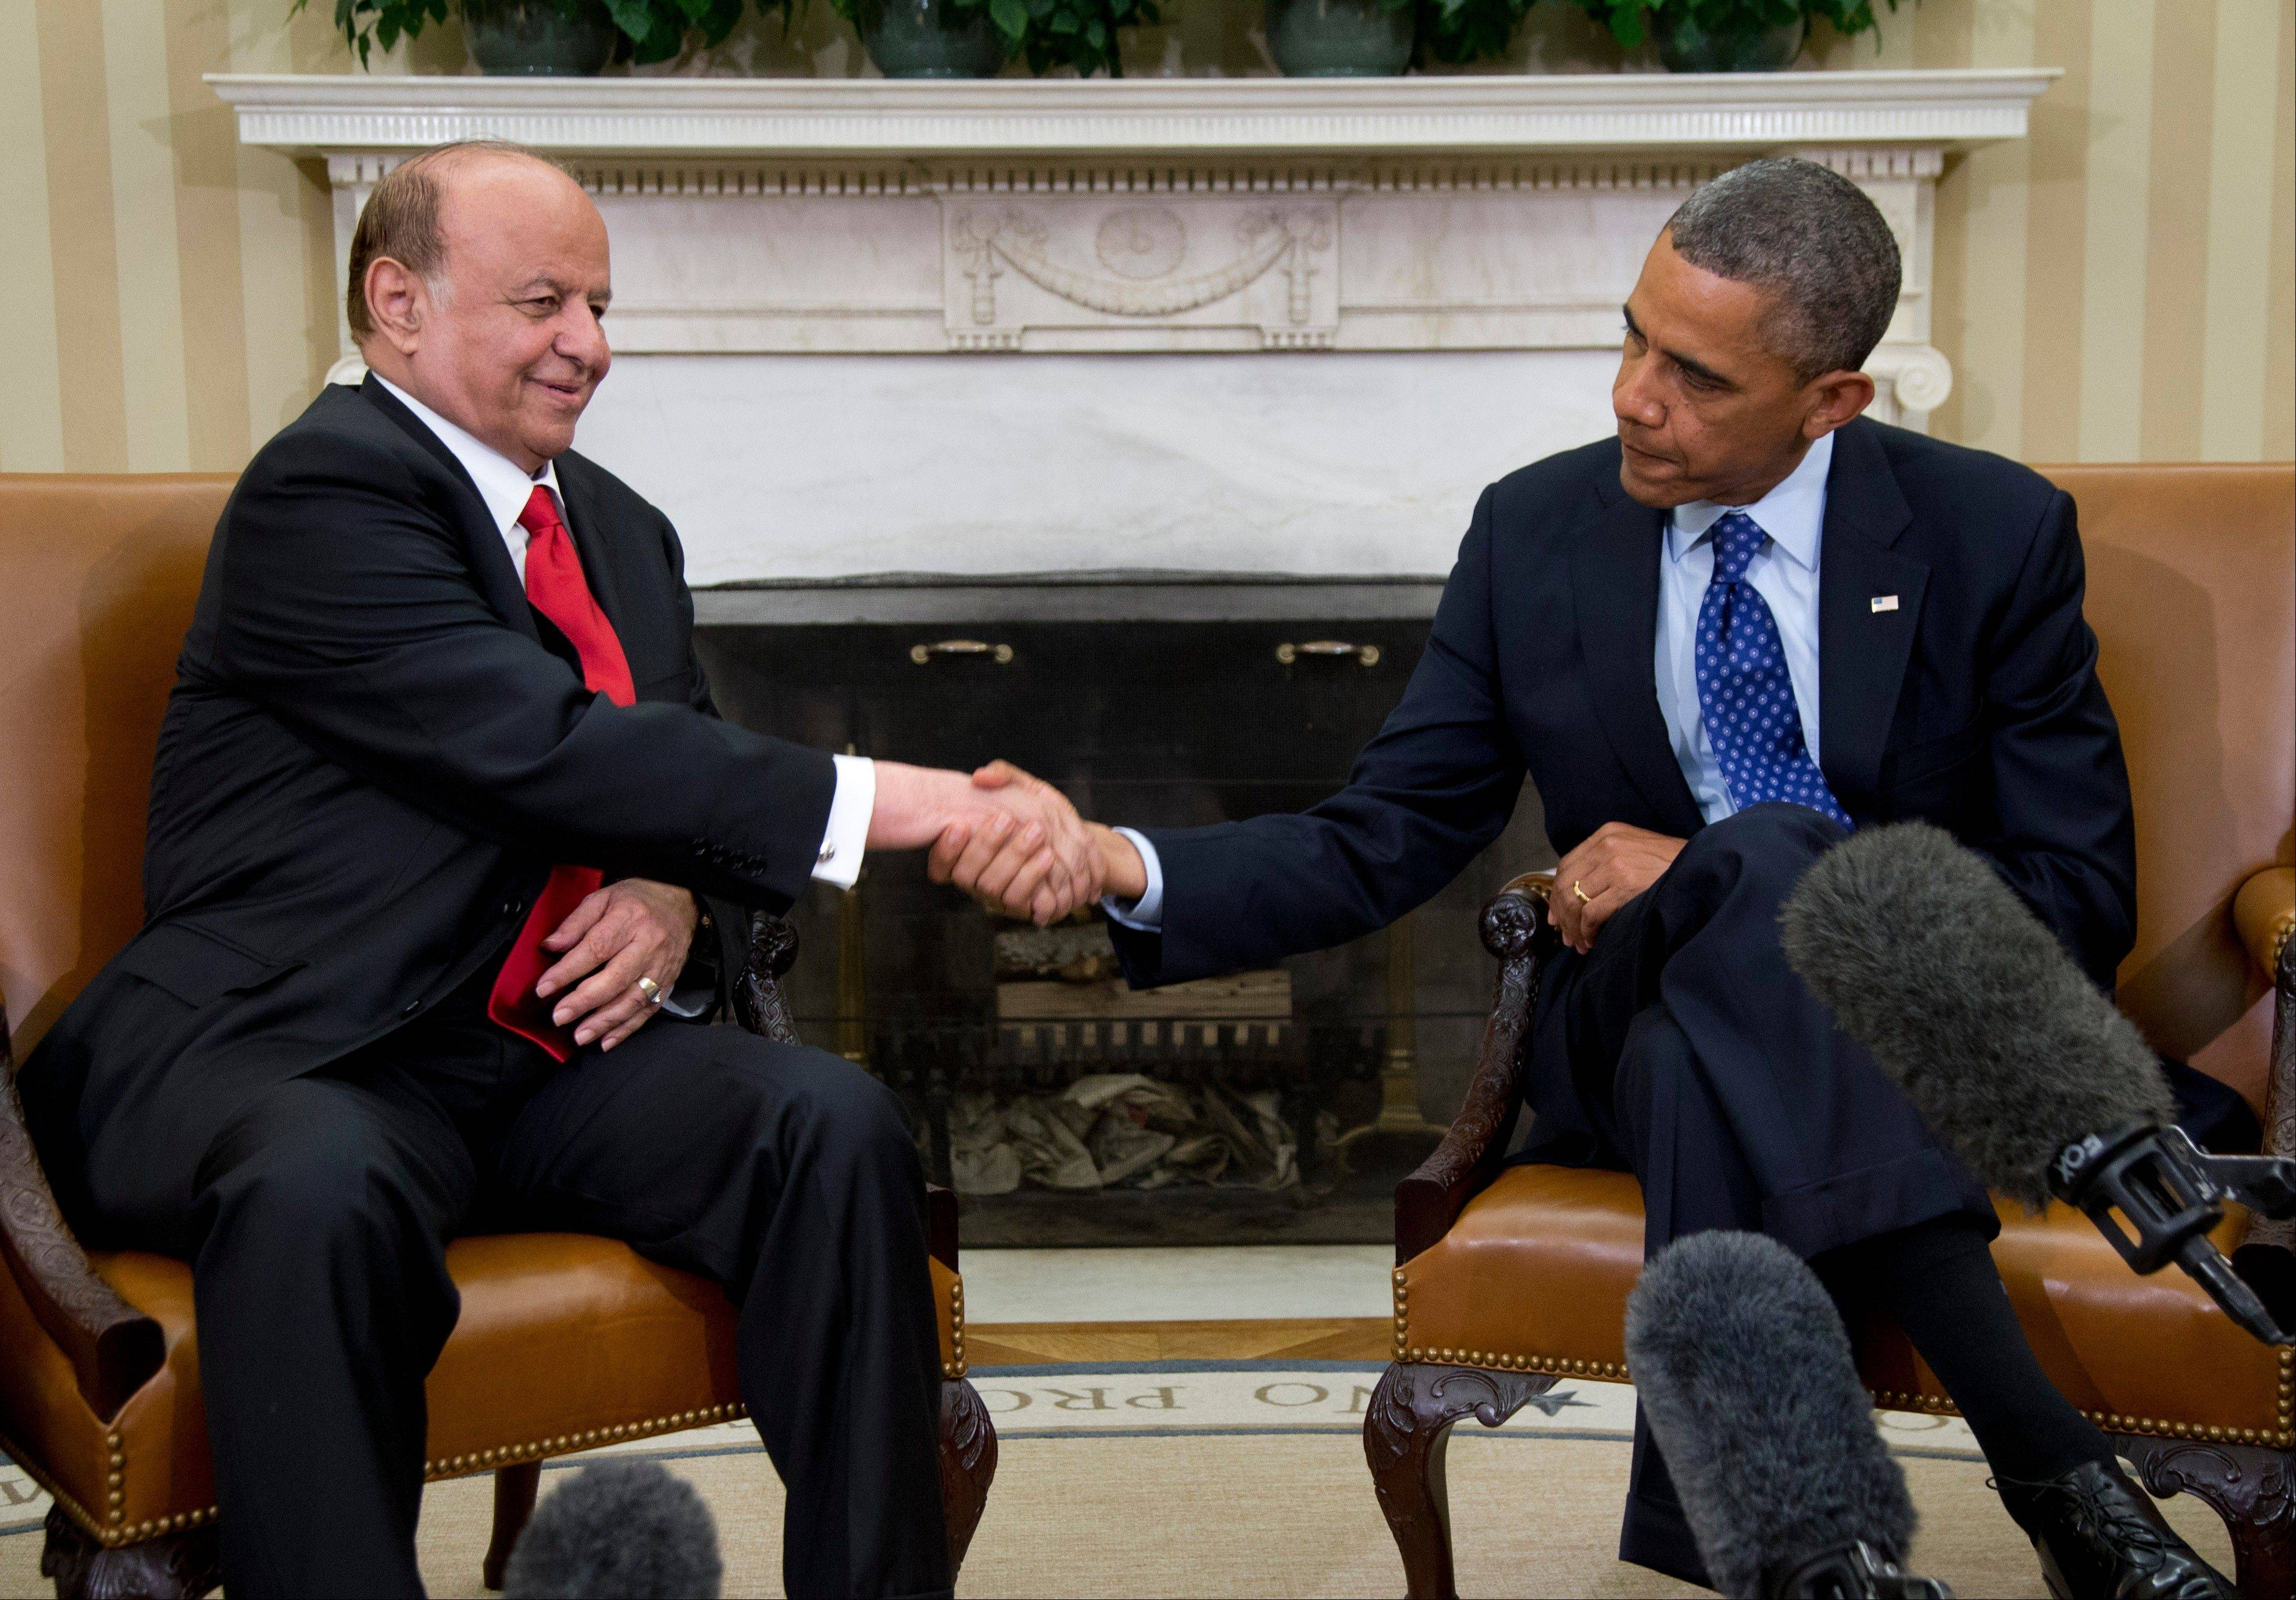 President Barack Obama and Yemen�s president, Abdo Rabby Mansour Hadi shake hands Thursday as they speak to the media in the Oval Office of the White House. On Saturday, the president took a birthday day off and played golf. The White House said there were three golfing foursomes, which included some of Obama�s friends from Hawaii, where he grew up, and Chicago, where he lived before becoming president, as well as current and former aides.